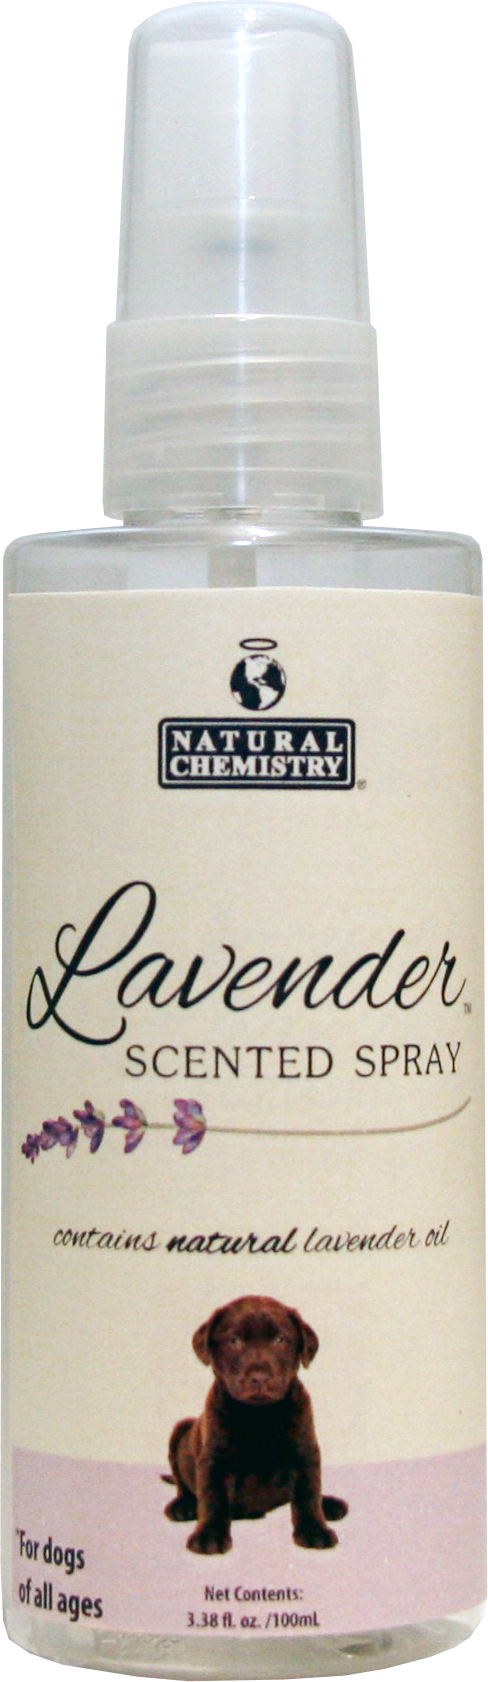 11128 Lavender Scented Spray.png